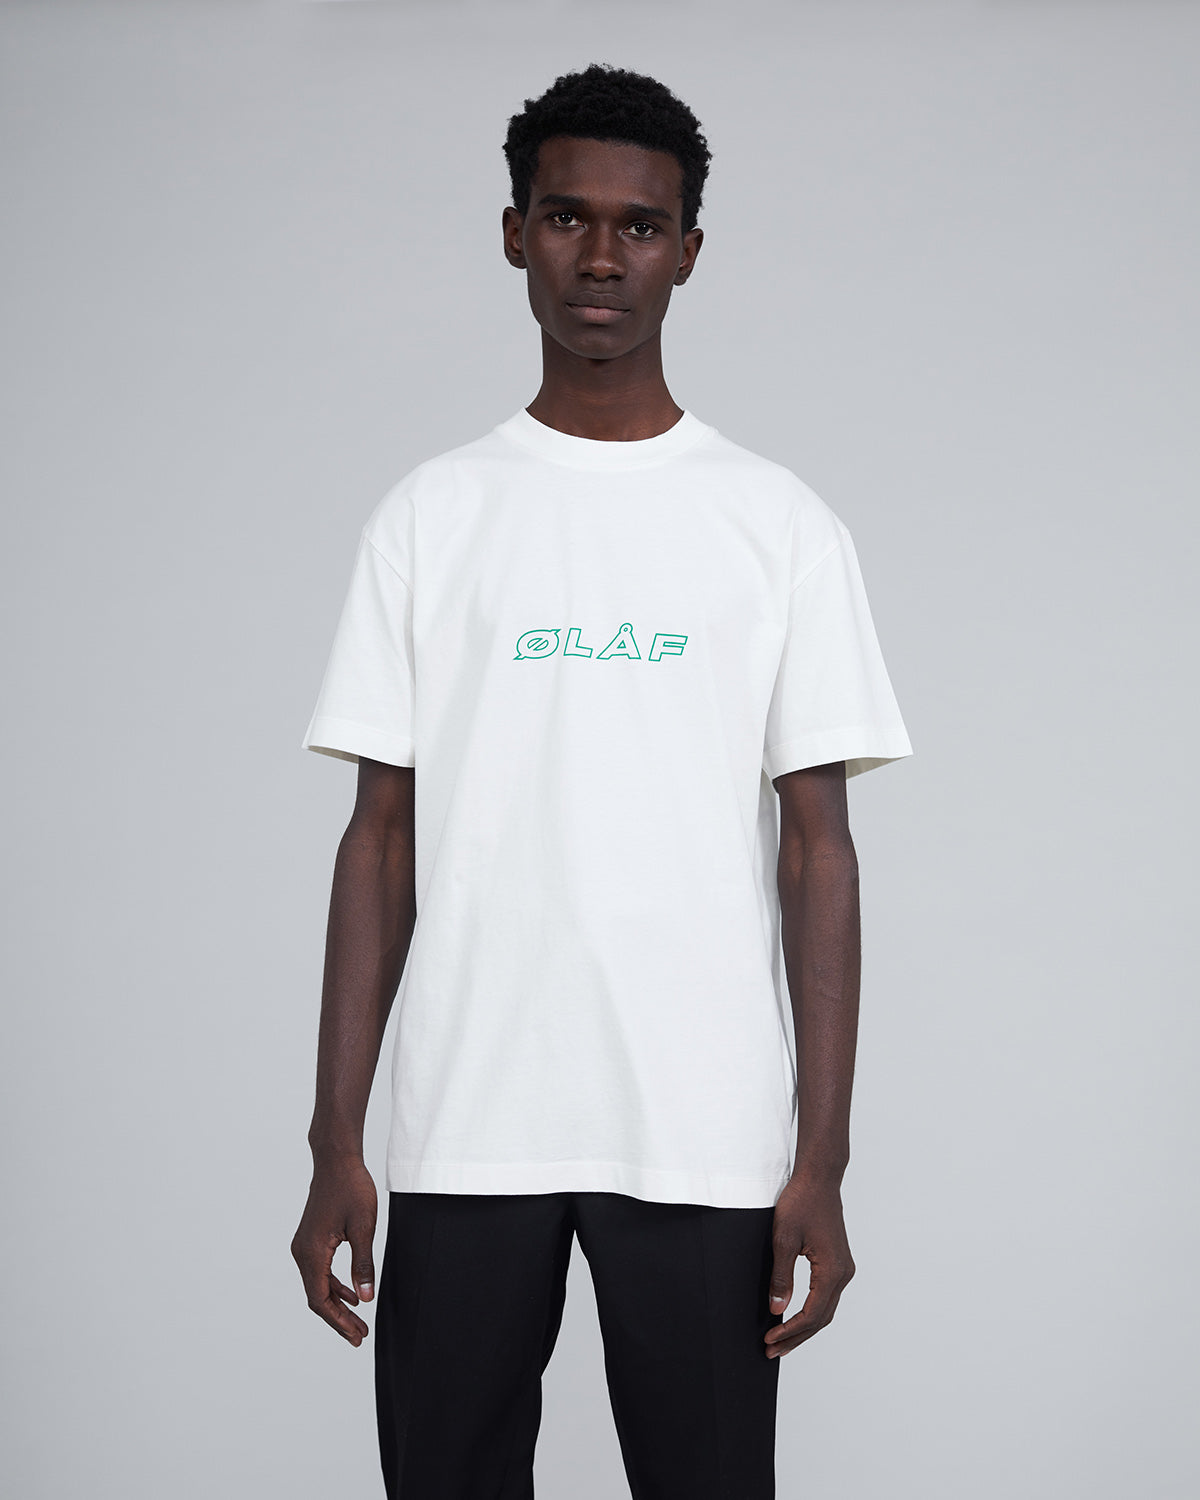 ØLÅF Italic T White / Green, Portuguese fabric, 100% cotton (220 grams/sqm), Post wash, Fine ribbed collar, Made in Portugal